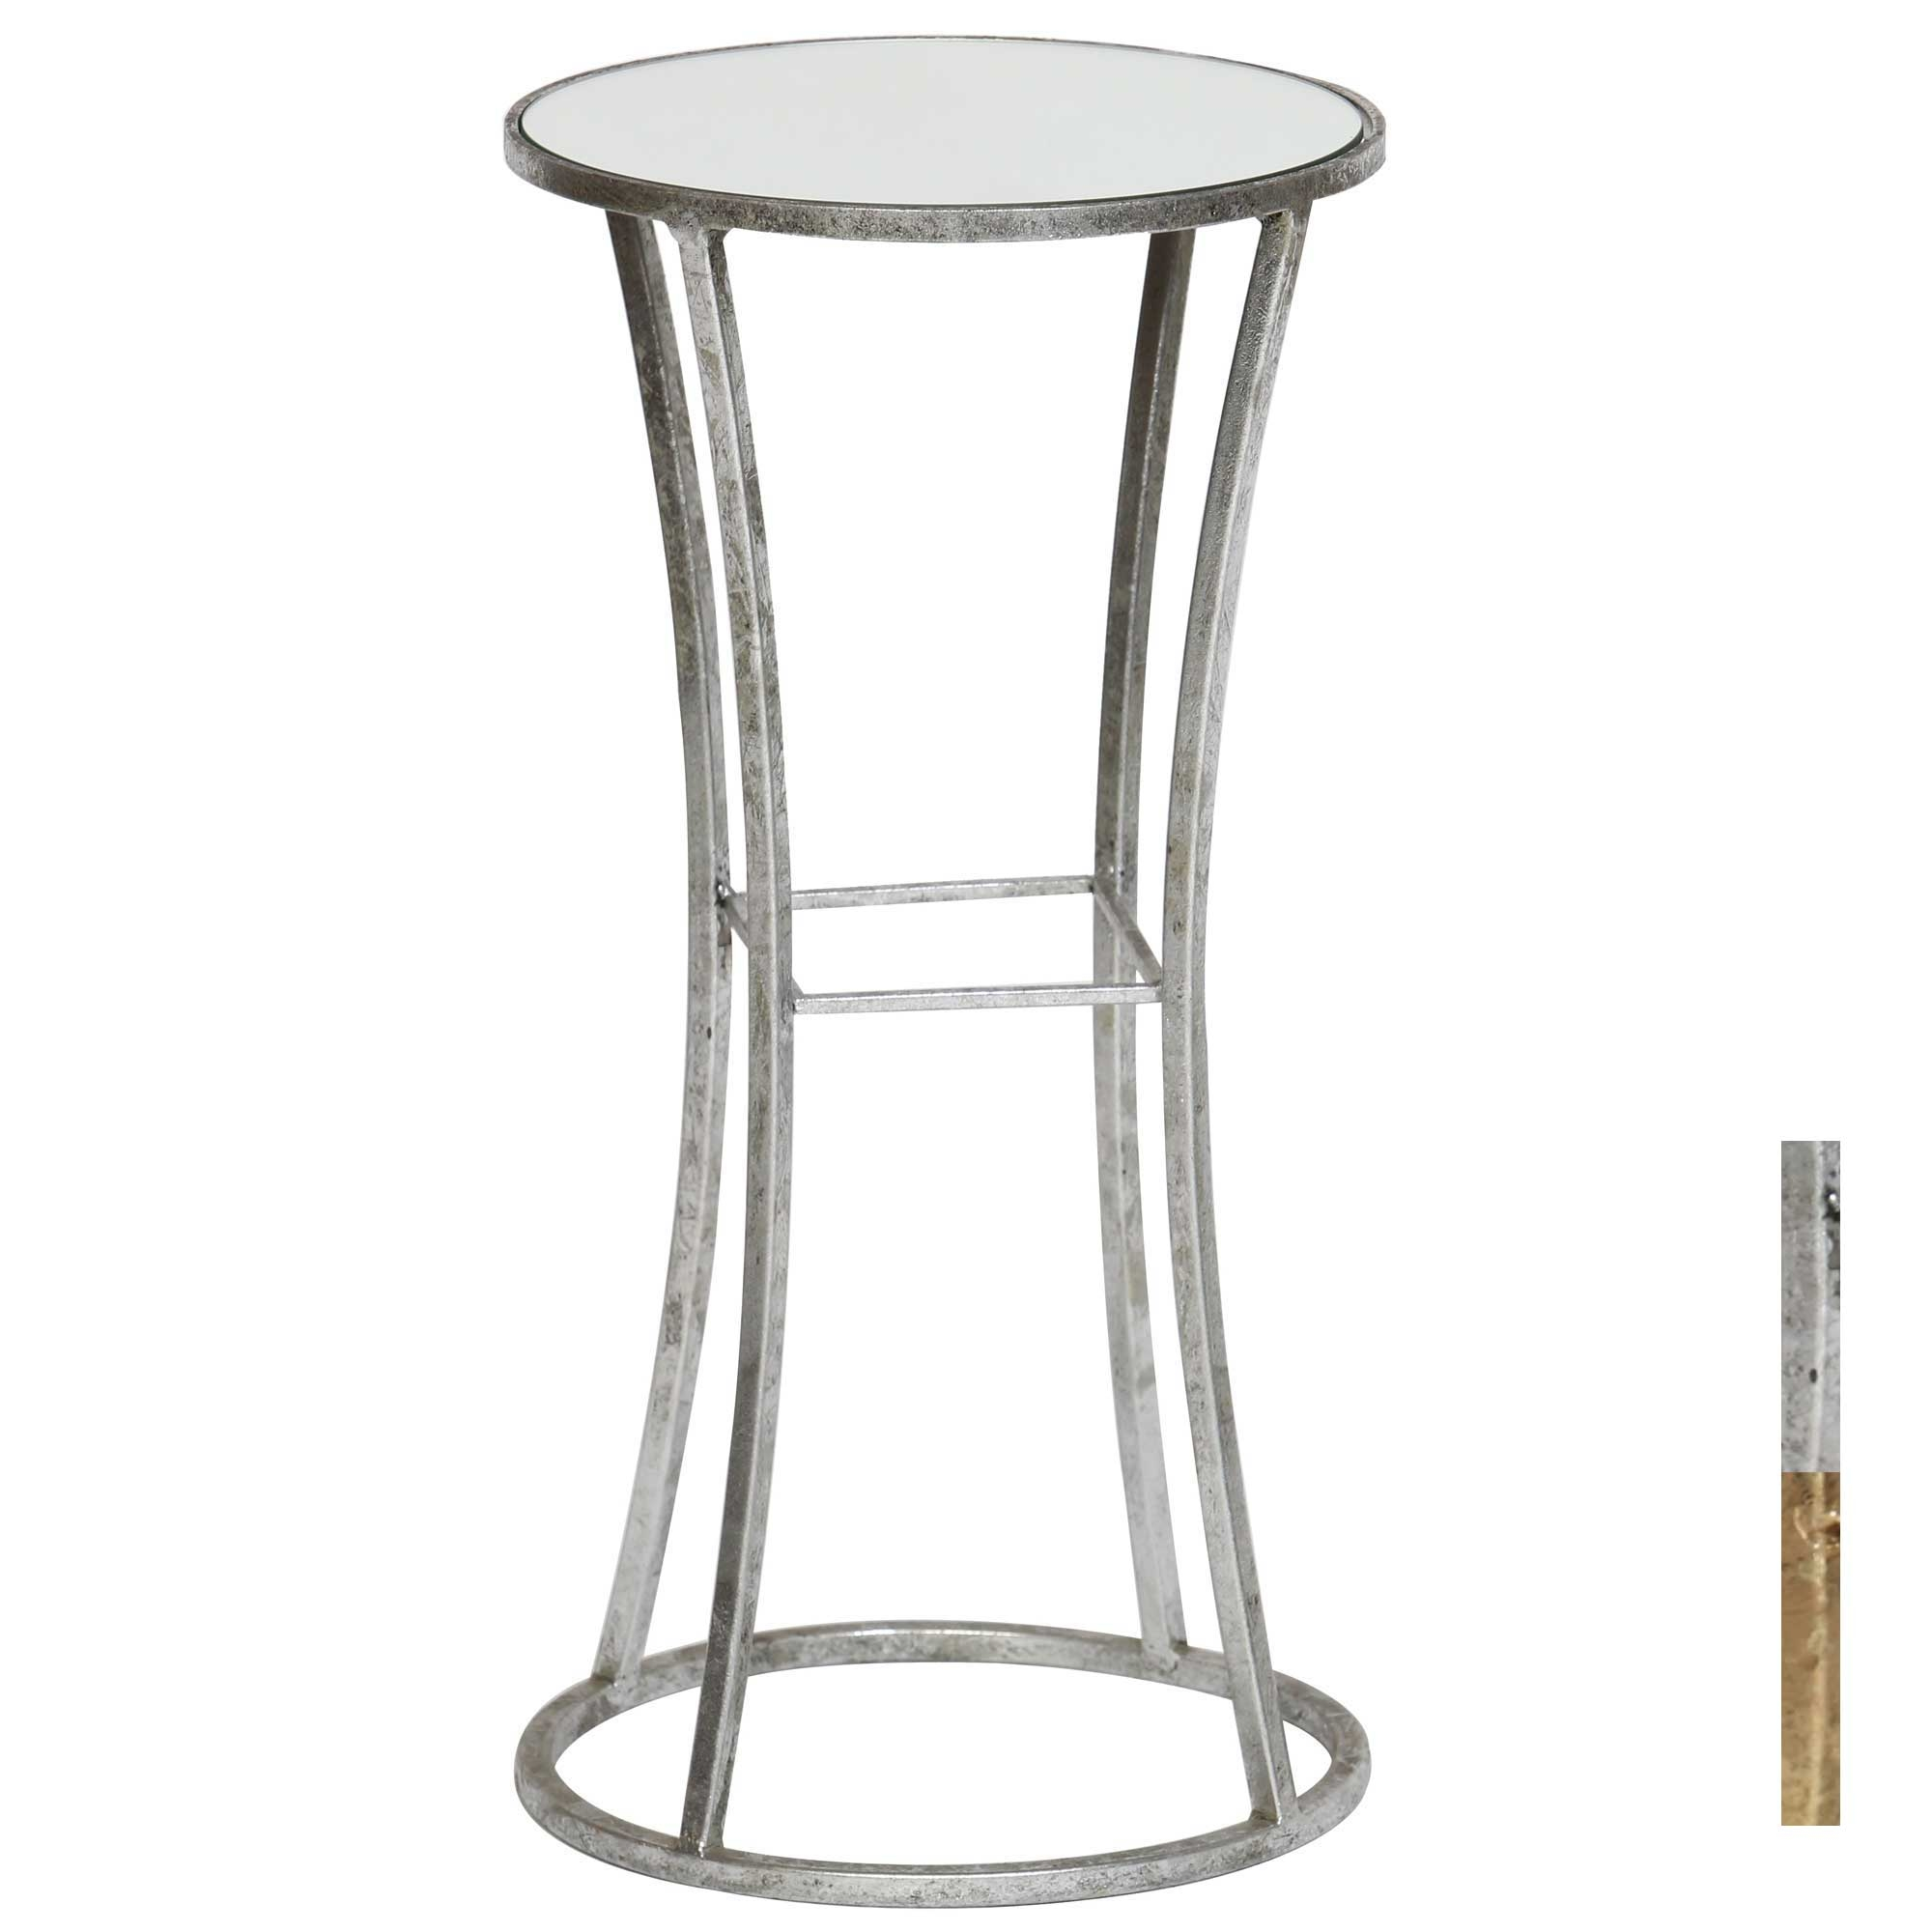 Pictured Is The Abilon Accent Table Which Features A